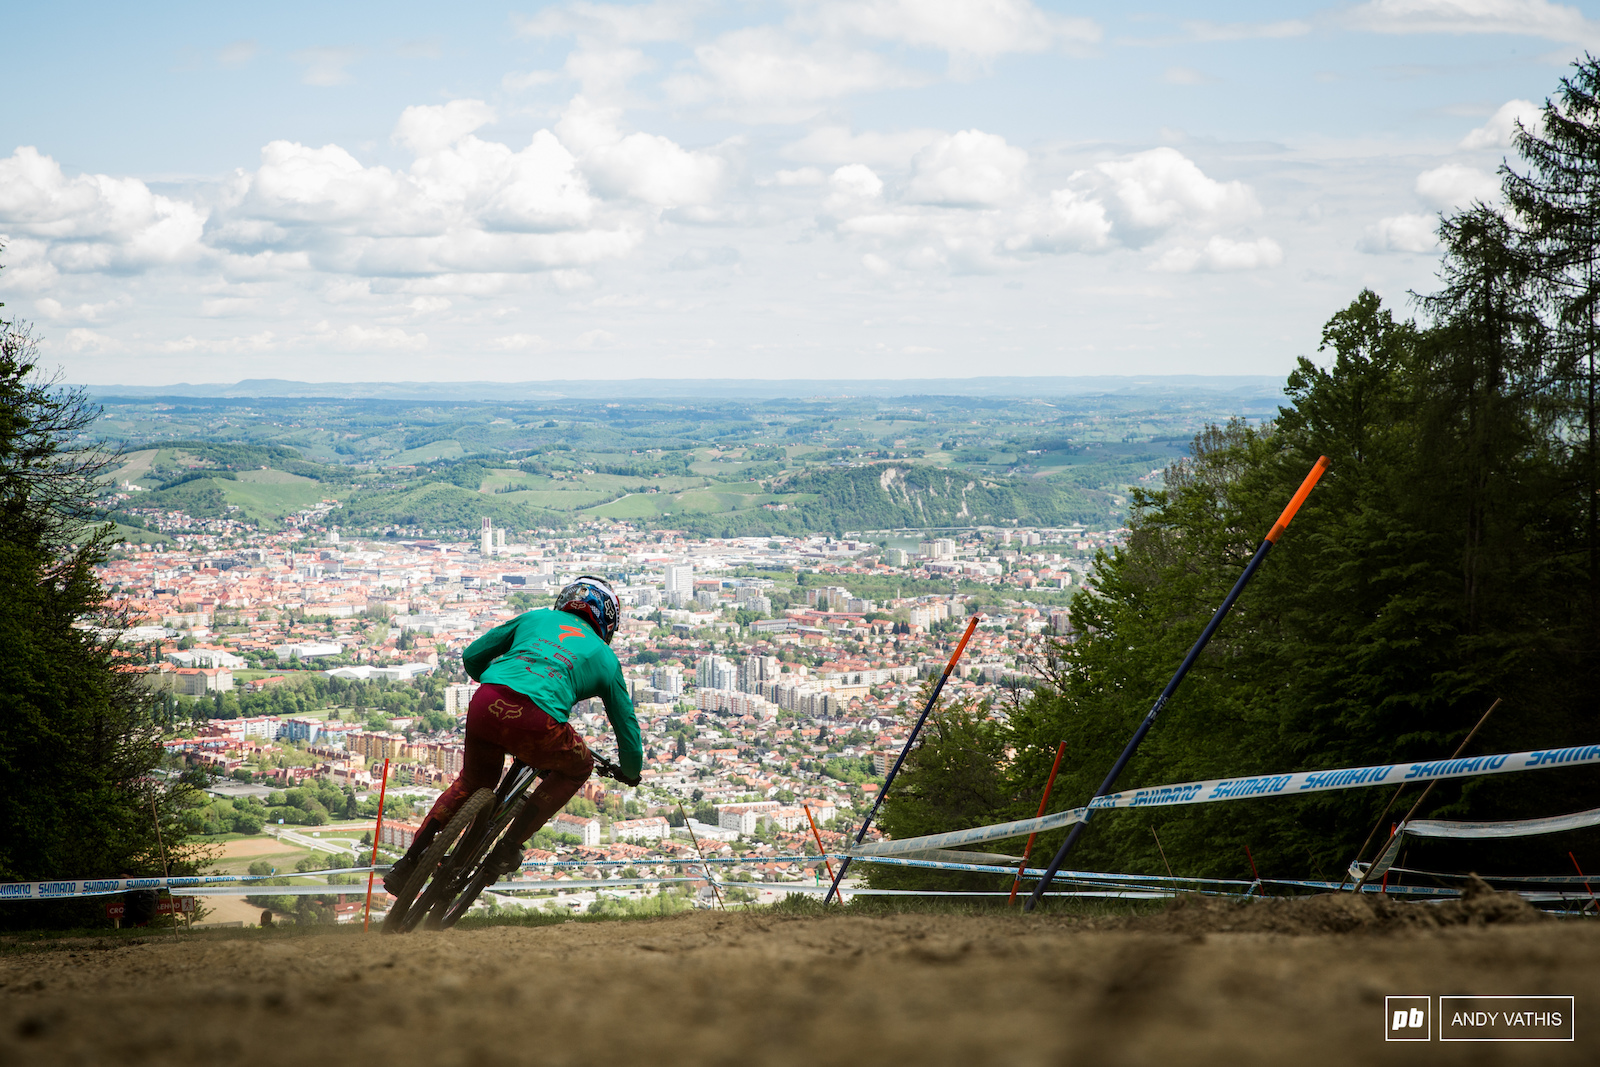 Loic Bruni enjoying the view before the inevitable clouds rolled in.